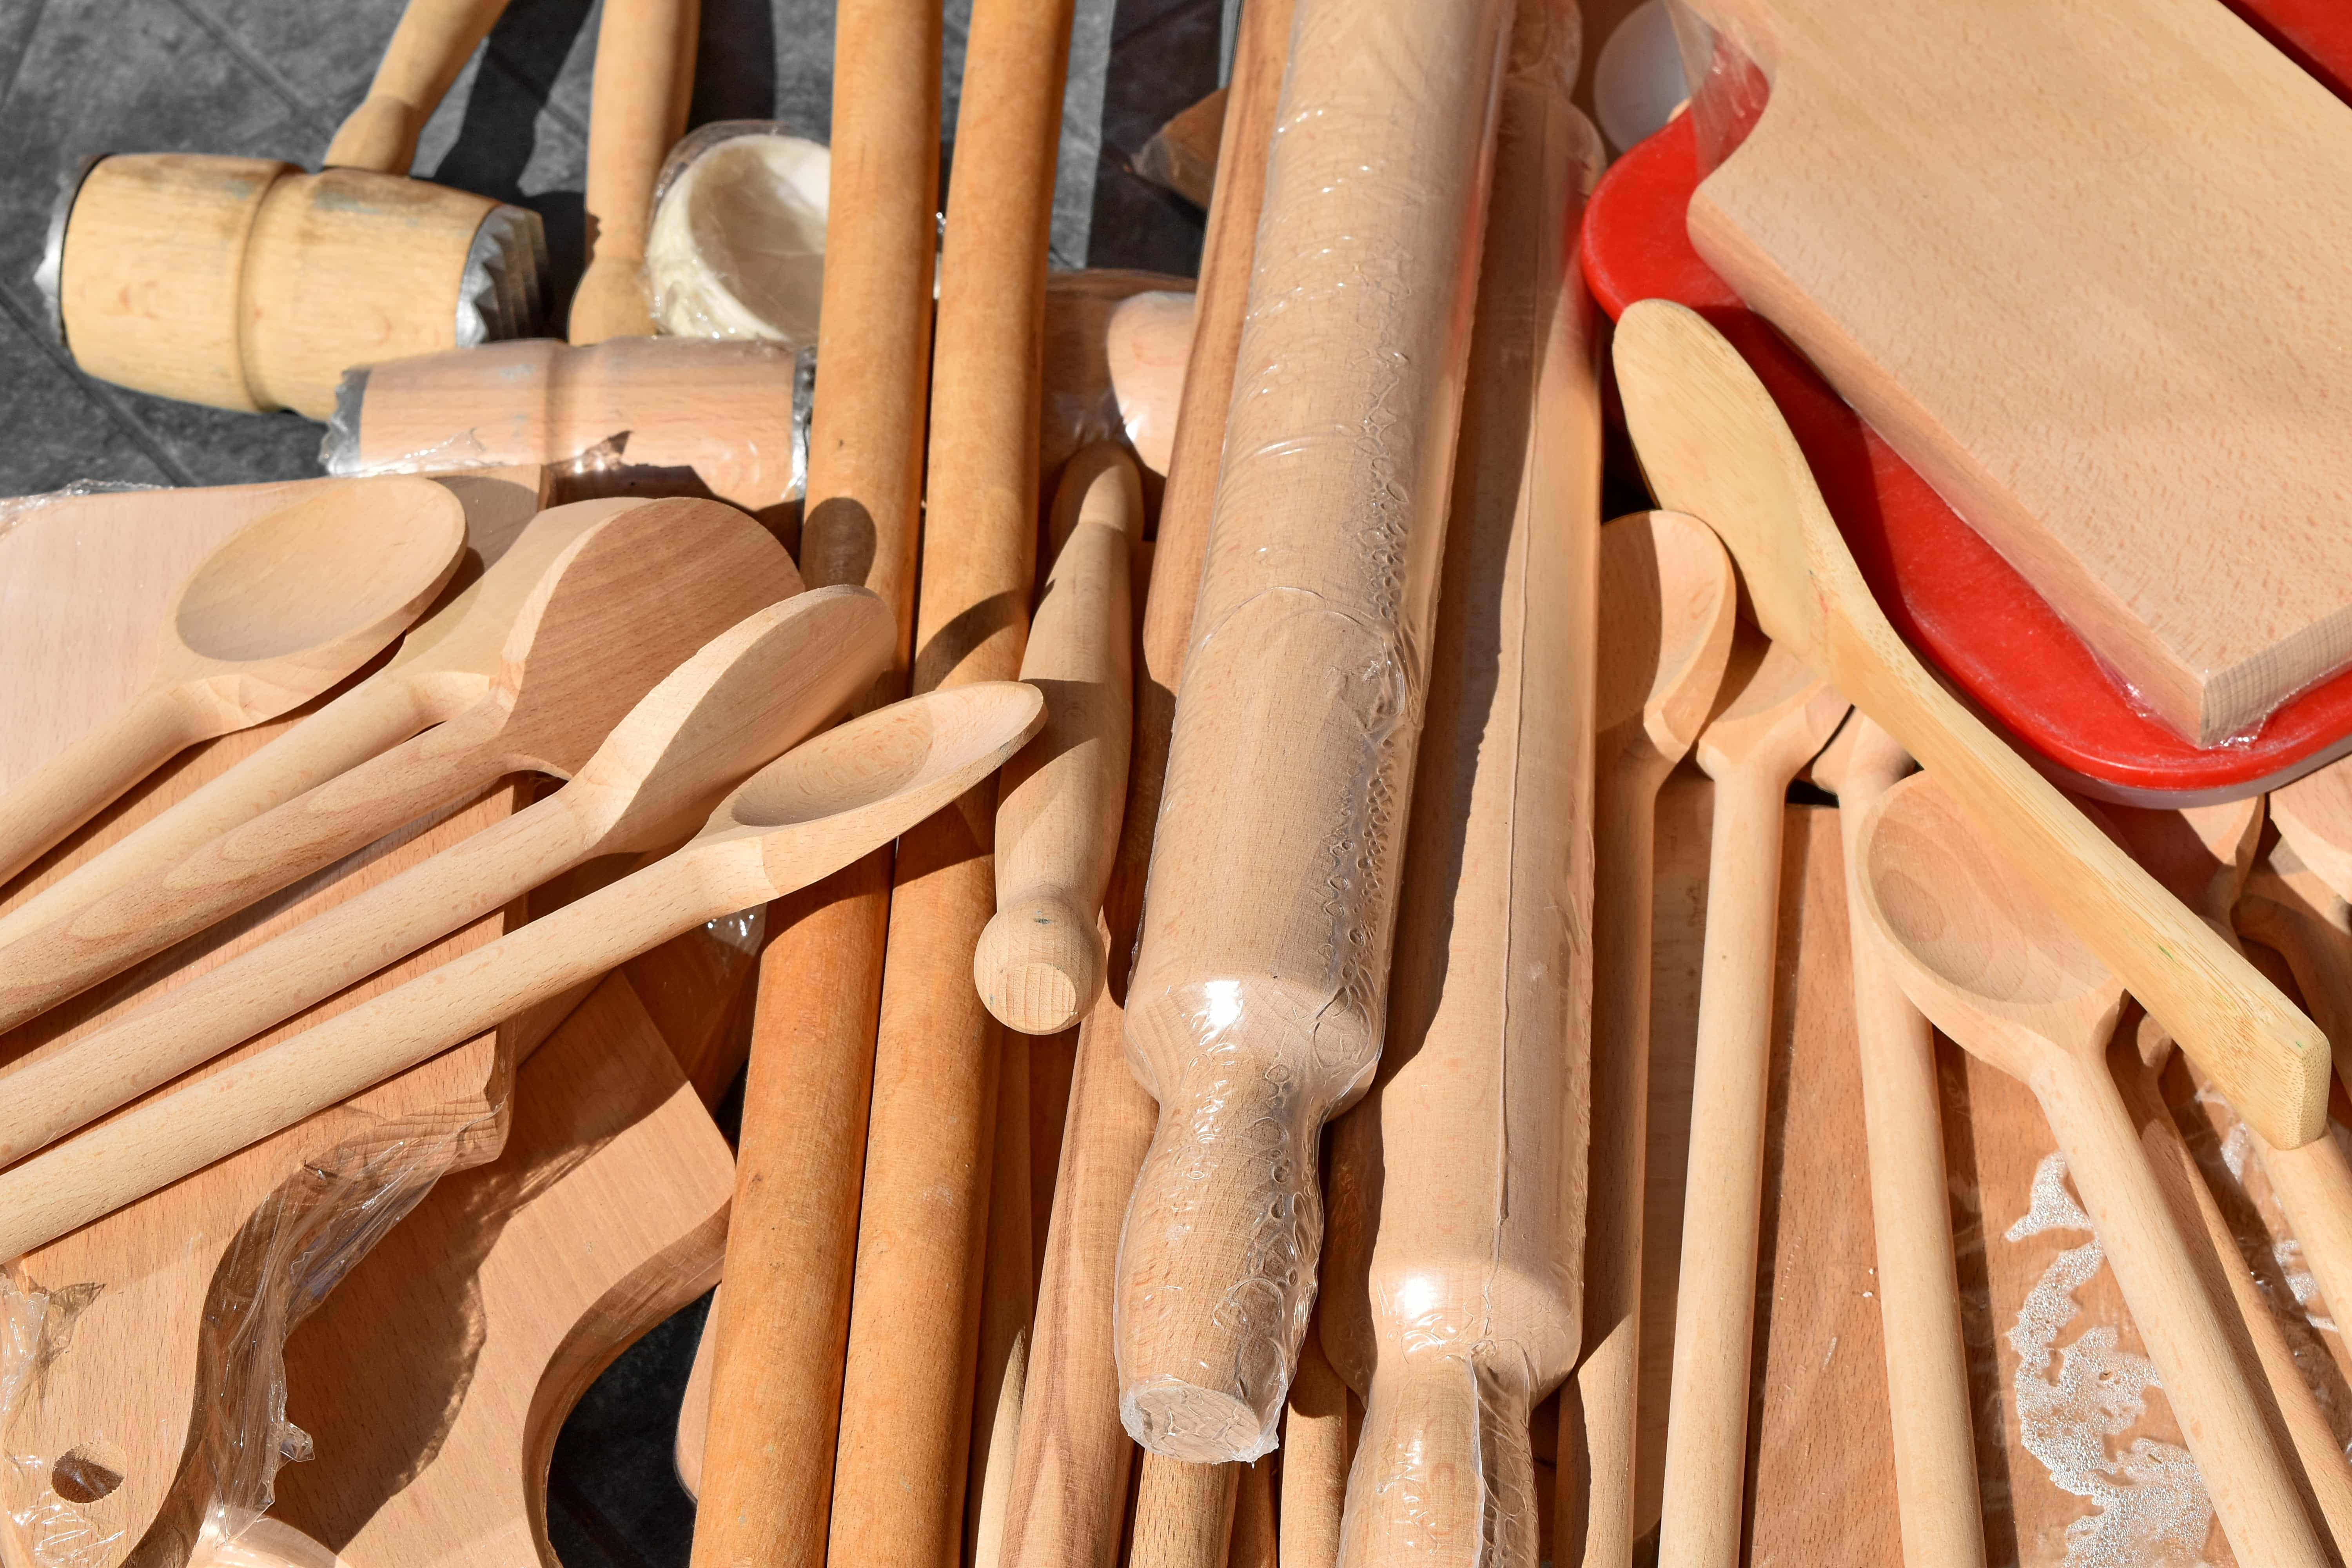 free picture: hammer, kitchenware, spoon, tableware, wood